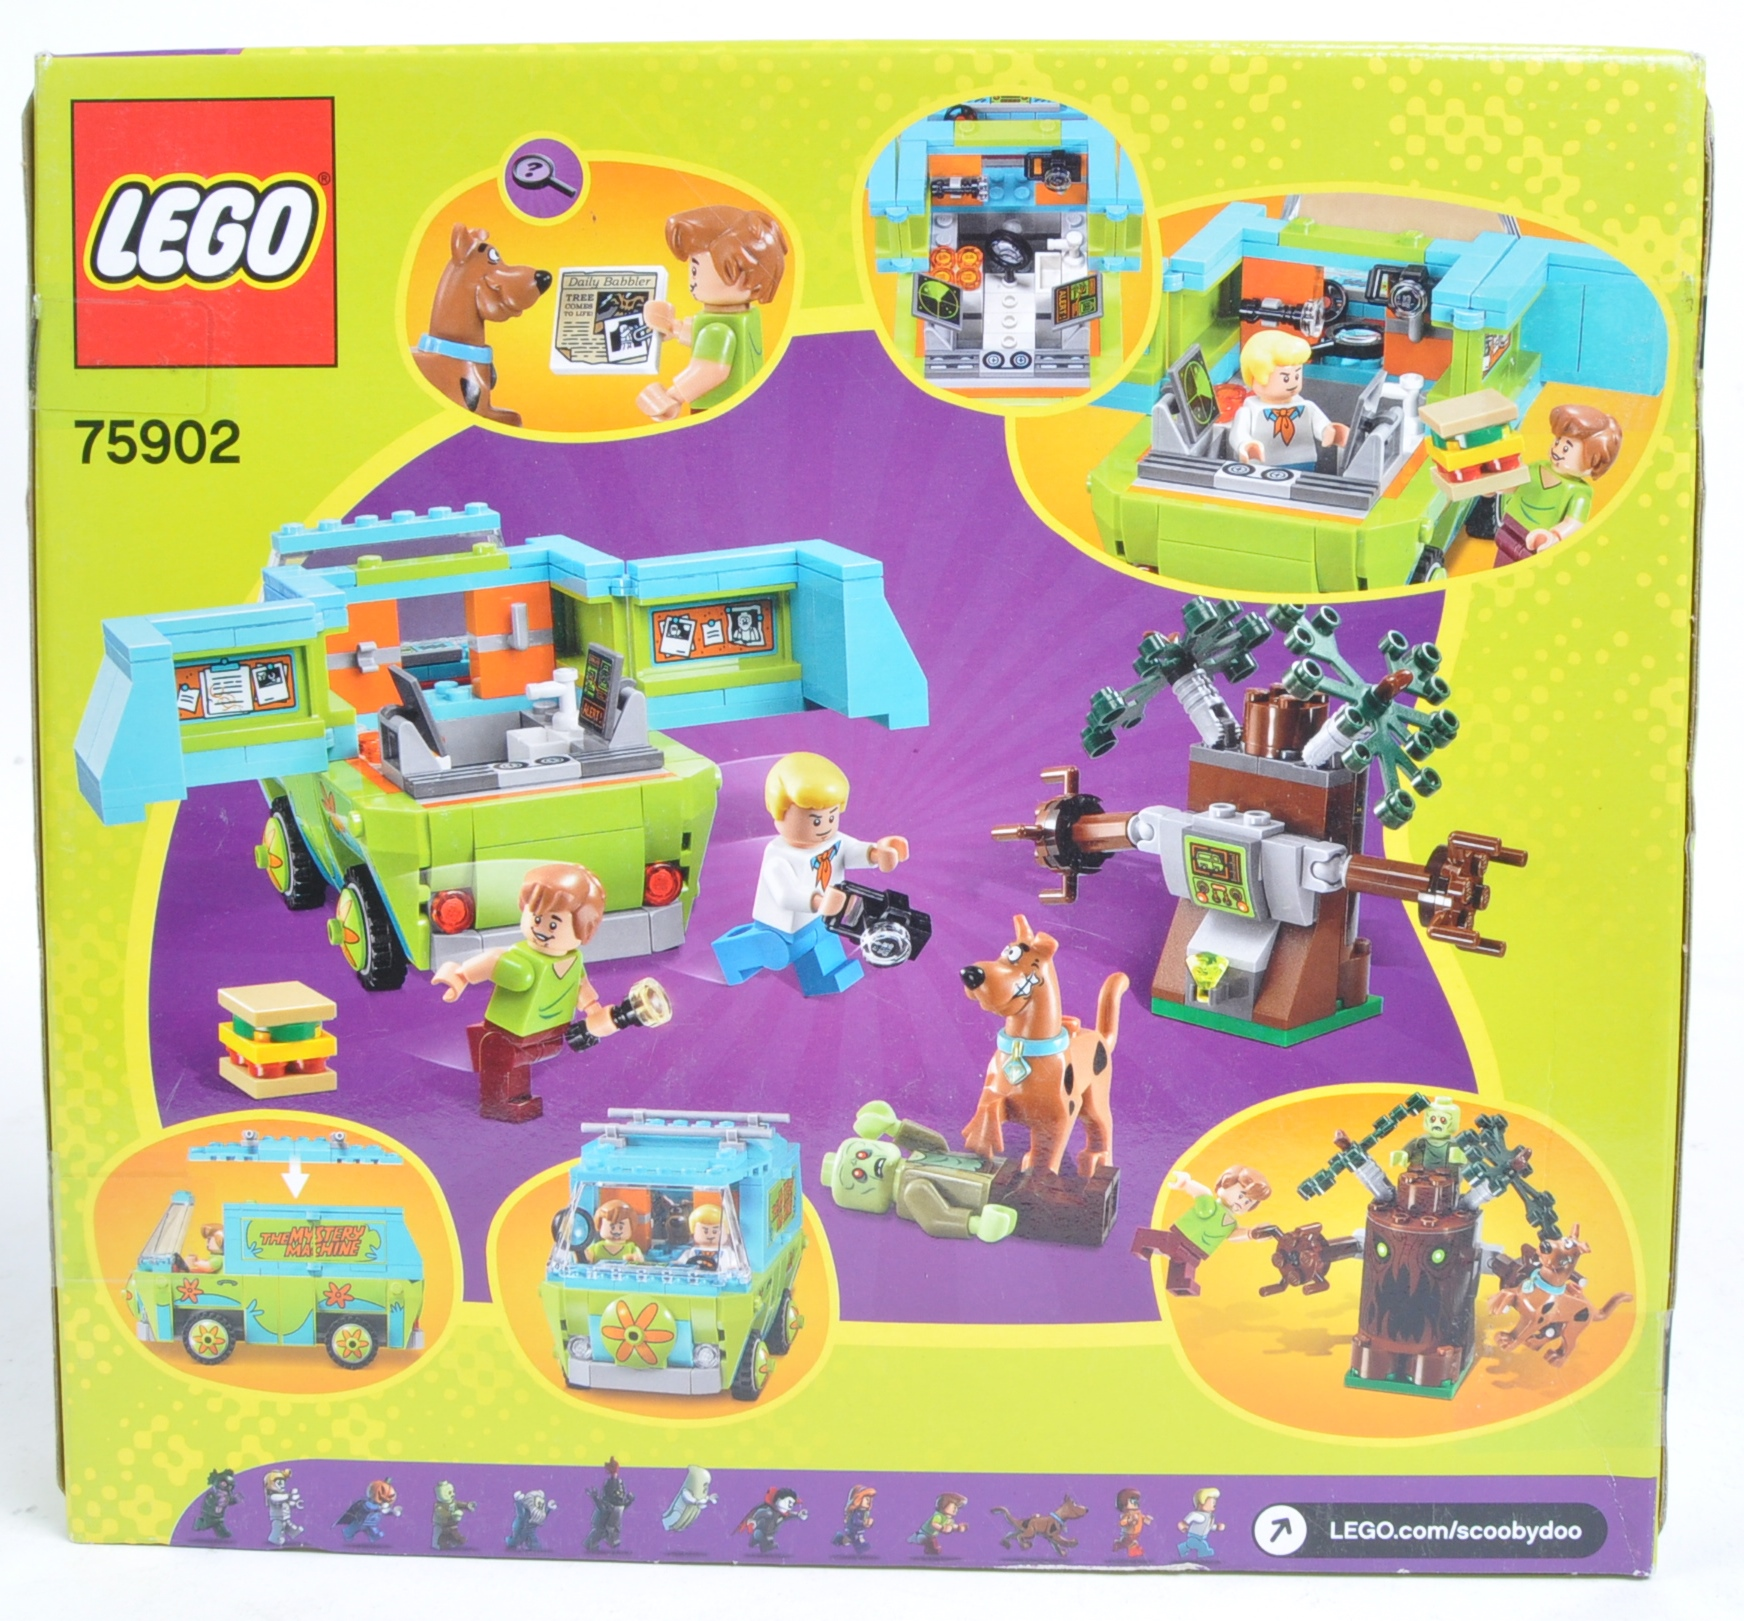 LEGO SET - SCOOBY DOO - 75902 - THE MYSTERY MACHINE - Image 2 of 4